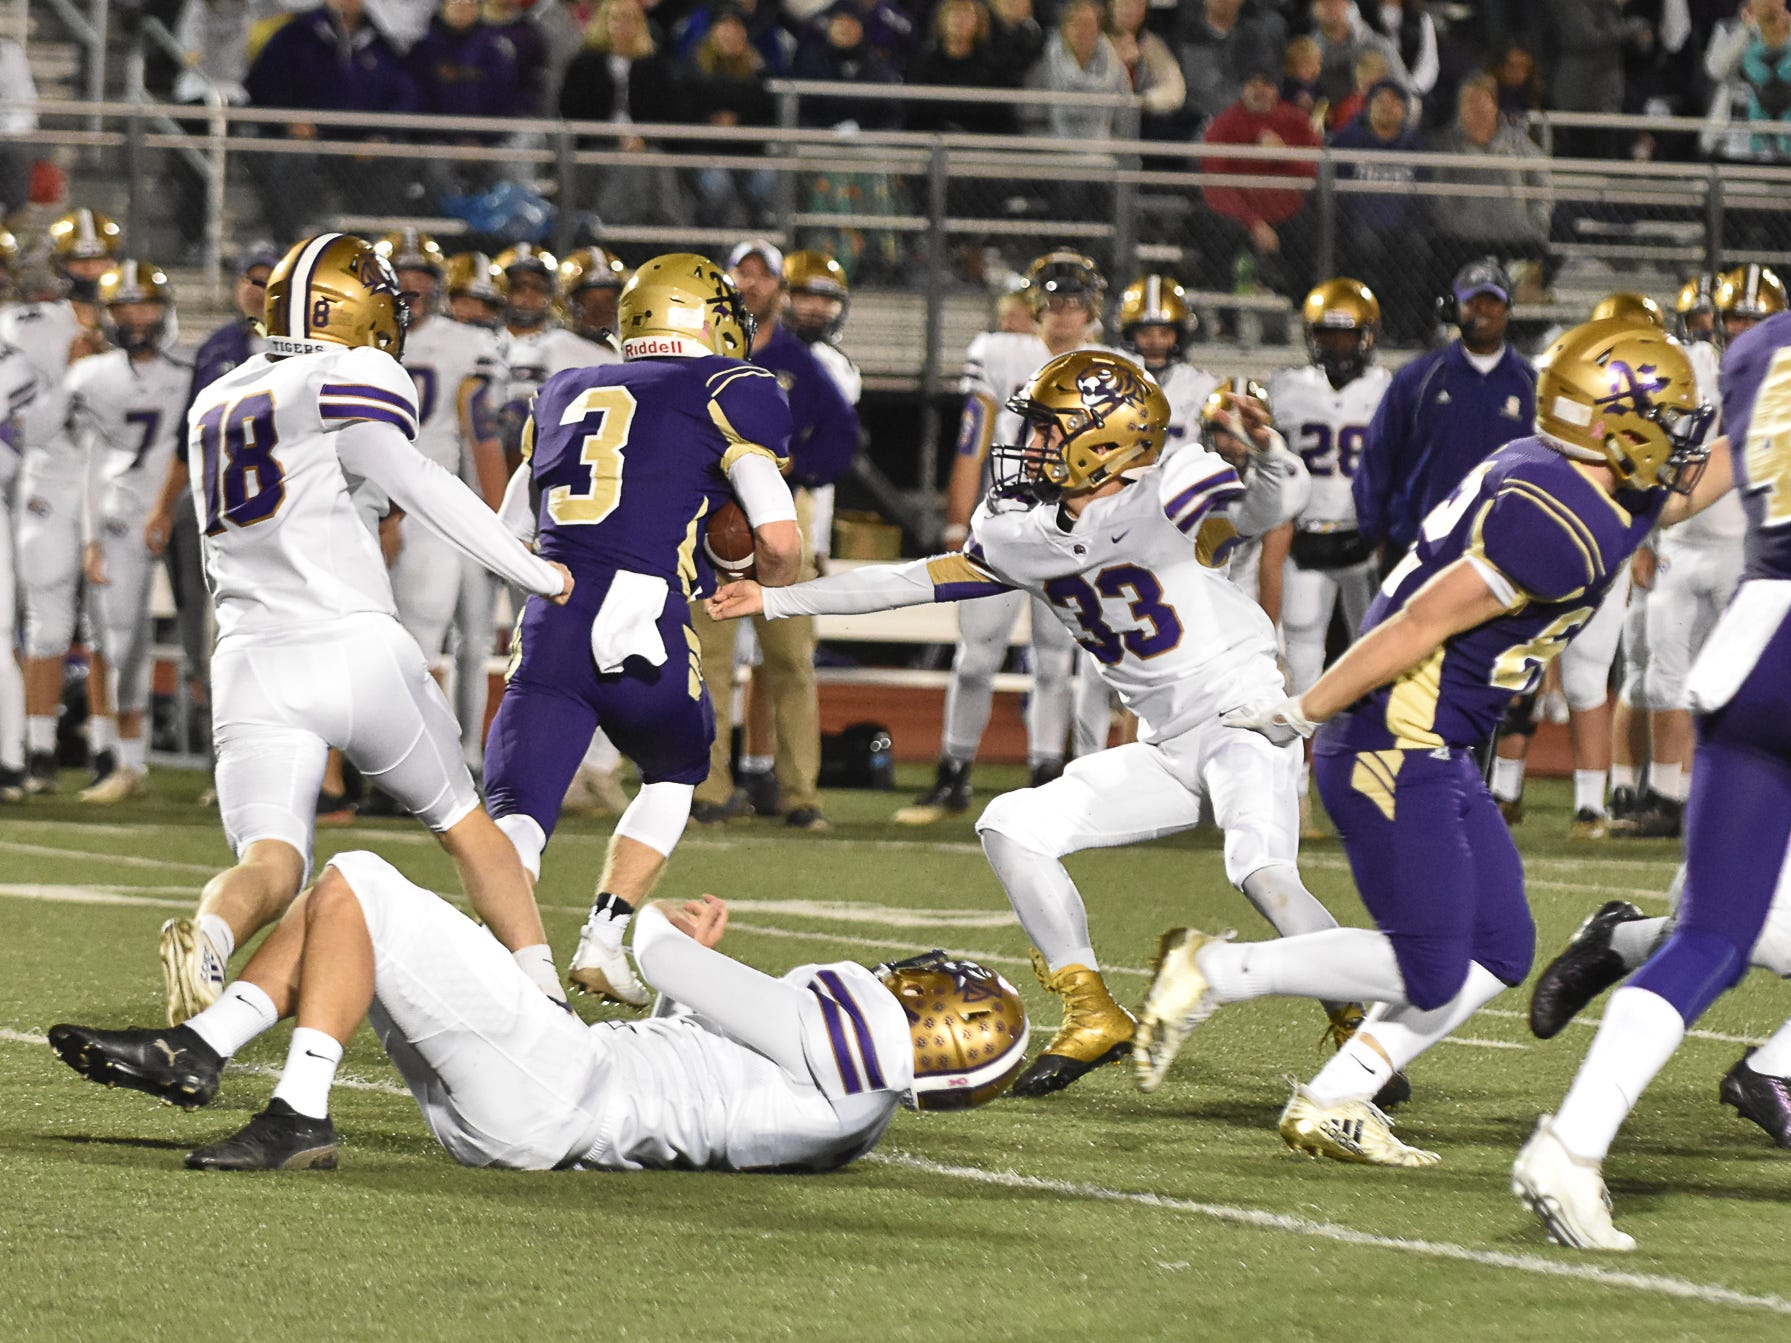 Norwalk's Scott Anderson breaks free of the pack headed for a touchdown during a first-round playoff game Friday in Norwalk. Spencer ended Norwalk's season Oct. 26, 2018, with a 24-20 win in the first round of the Class 3A playoffs.